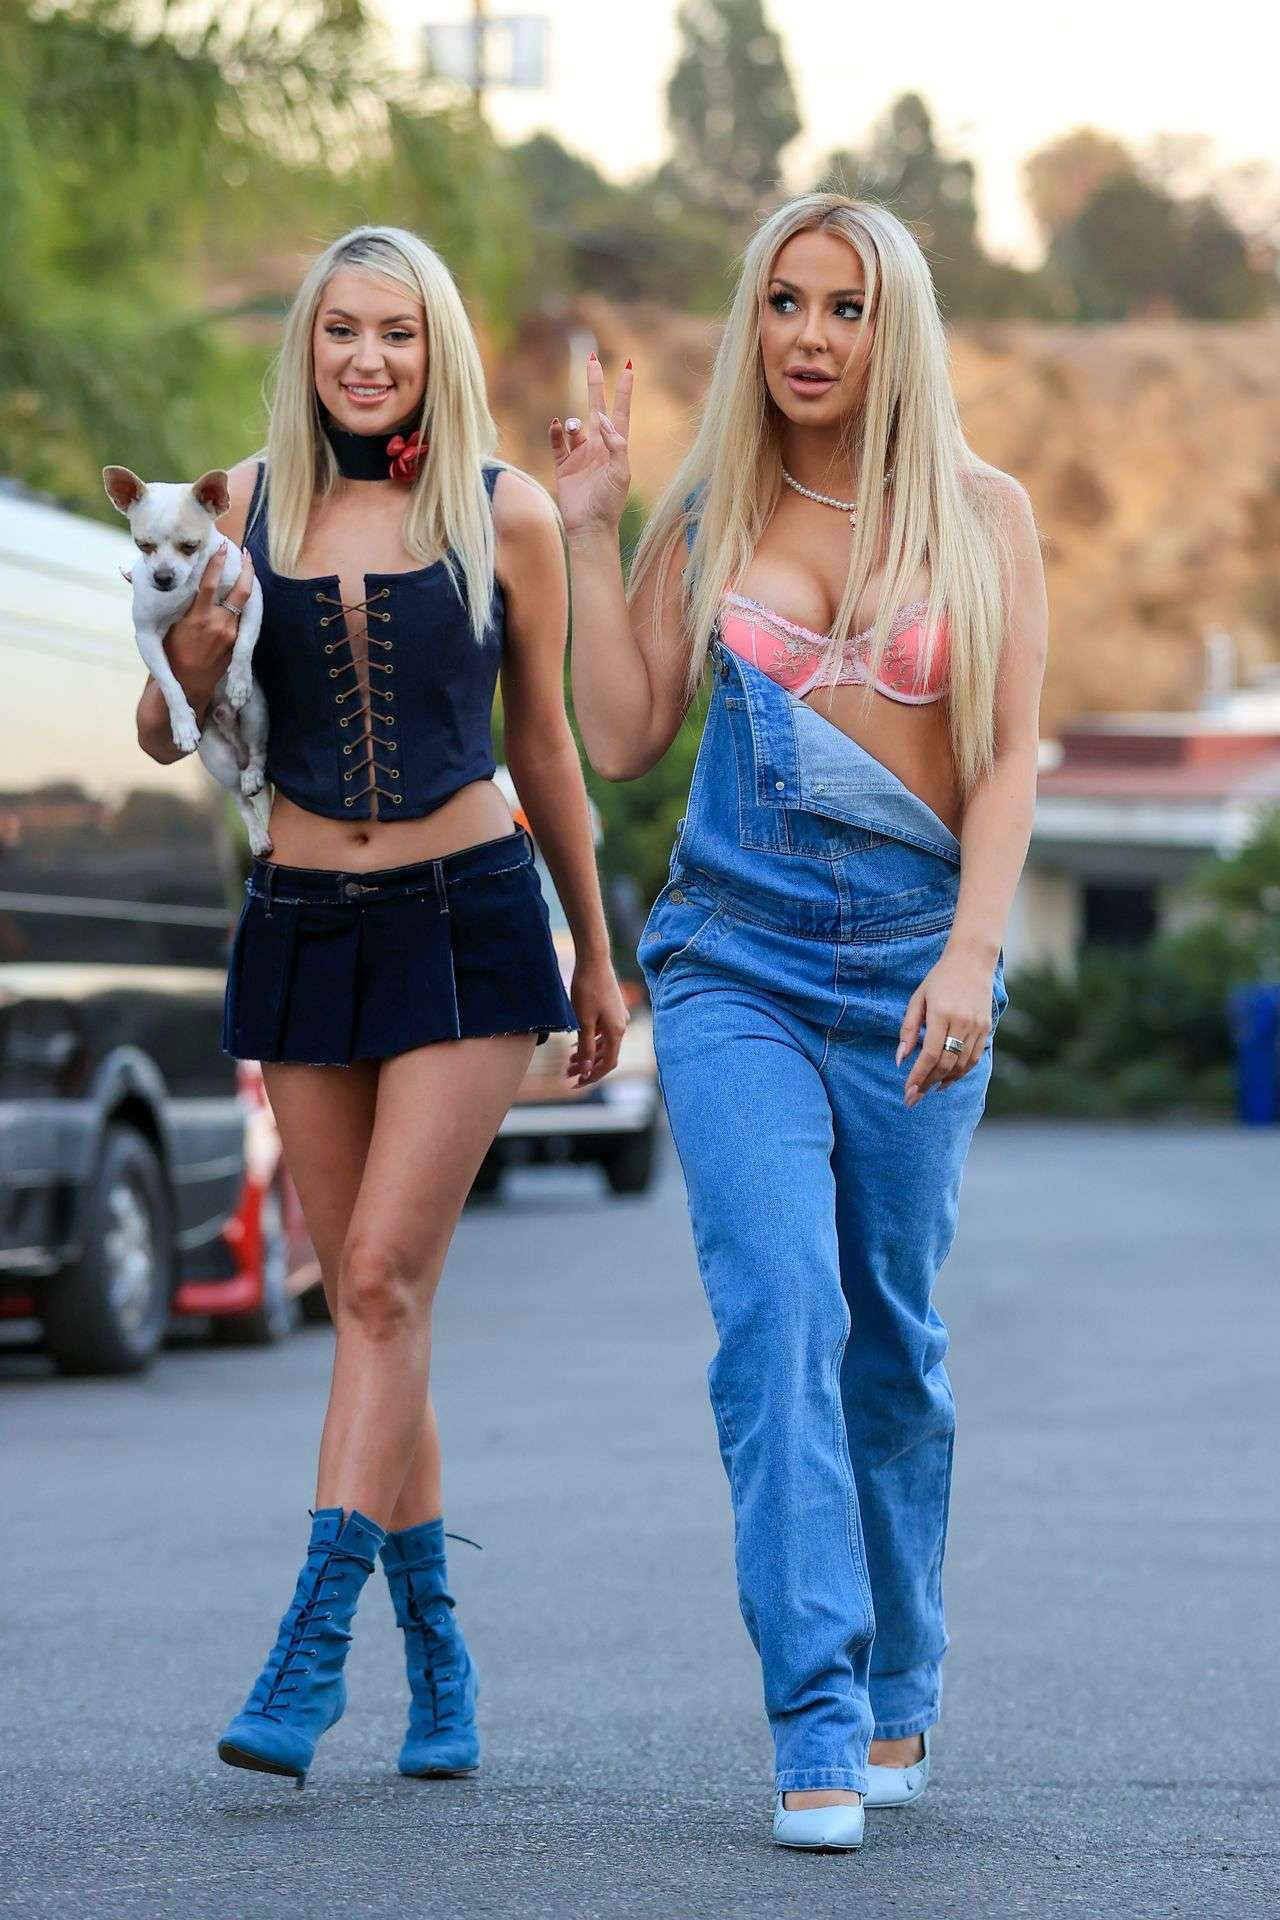 Tana Mongeau and Ashley Schwan Dress Up Like Paris and Nicole from The Simple Life for Halloween